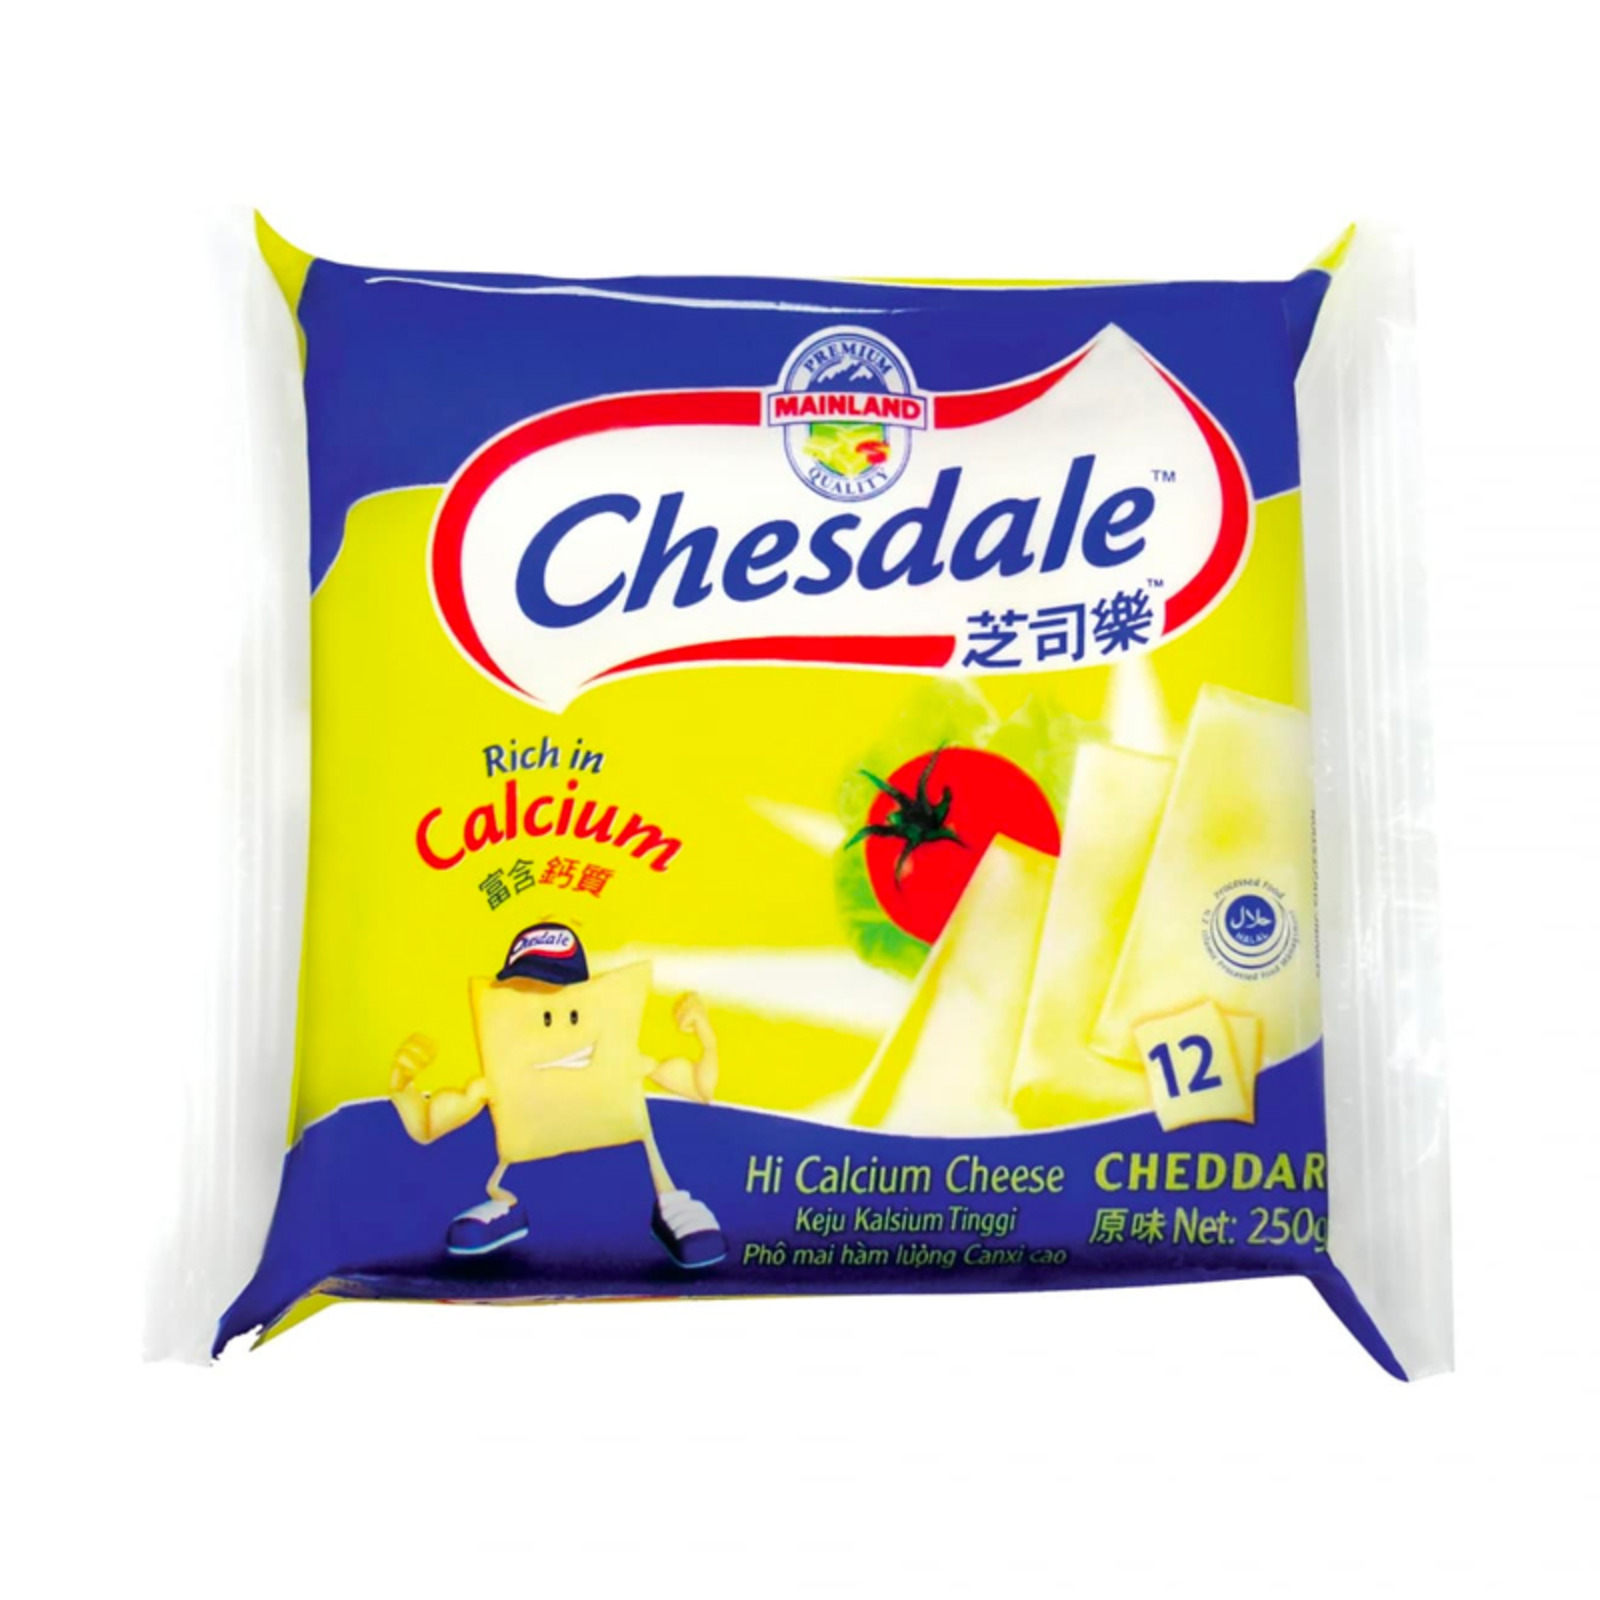 Chesdale Cheddar Cheese Slices - Original